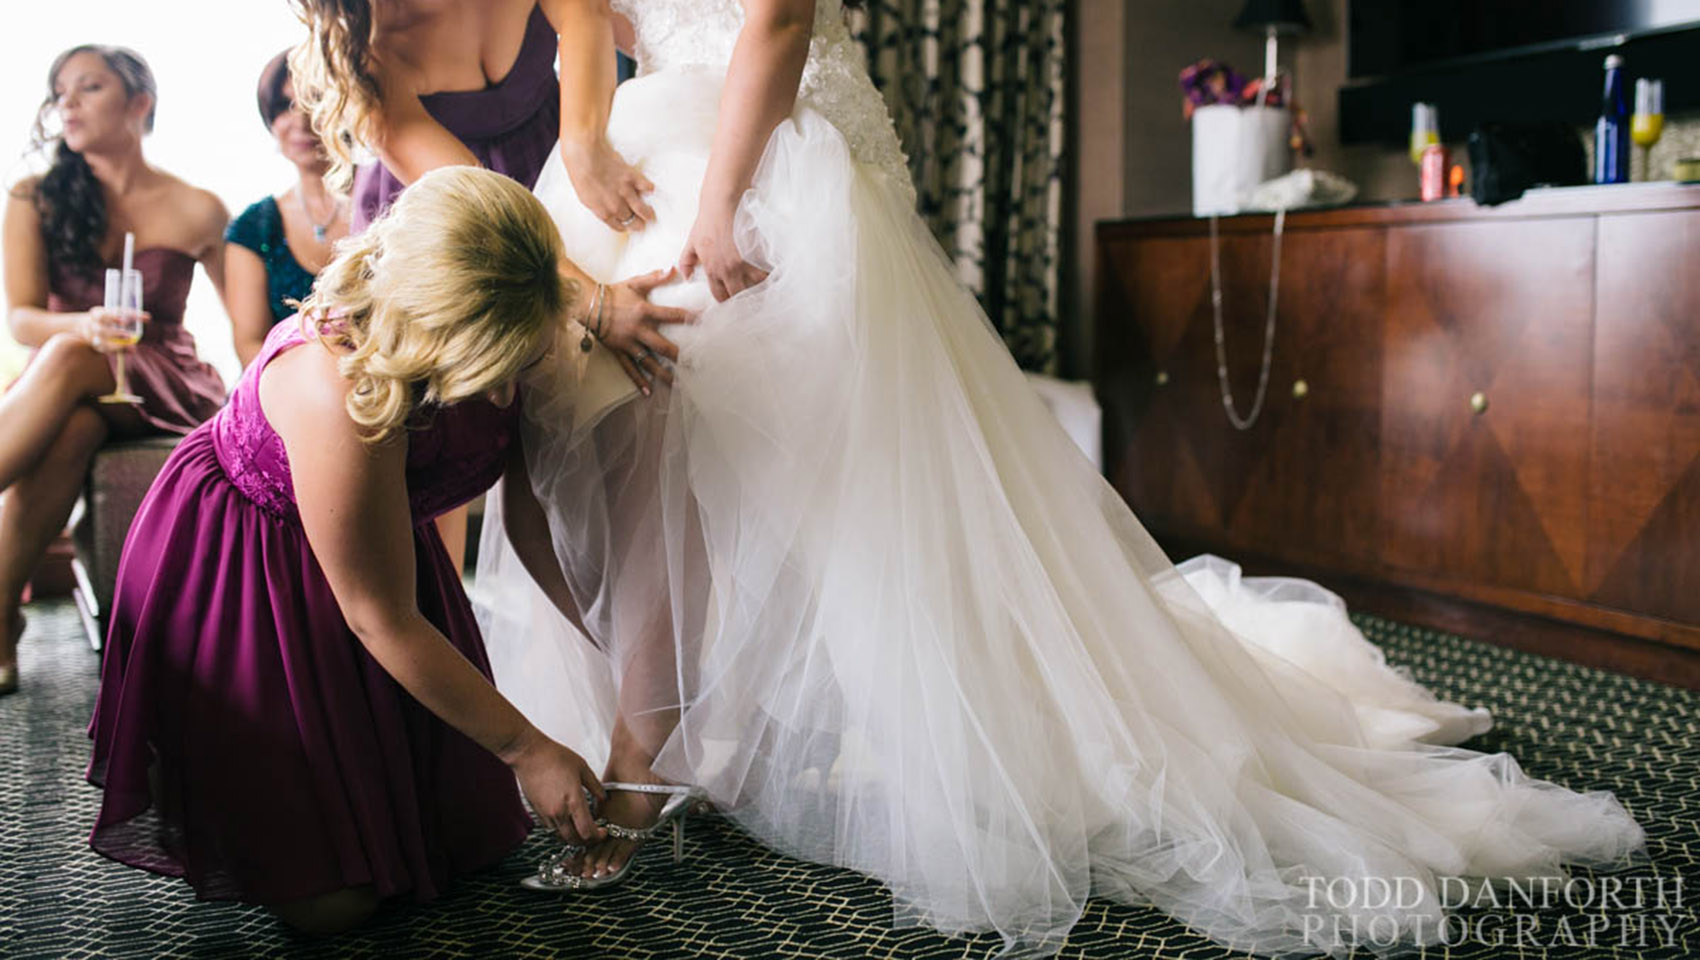 weddings at Kimpton Marlowe Hotel